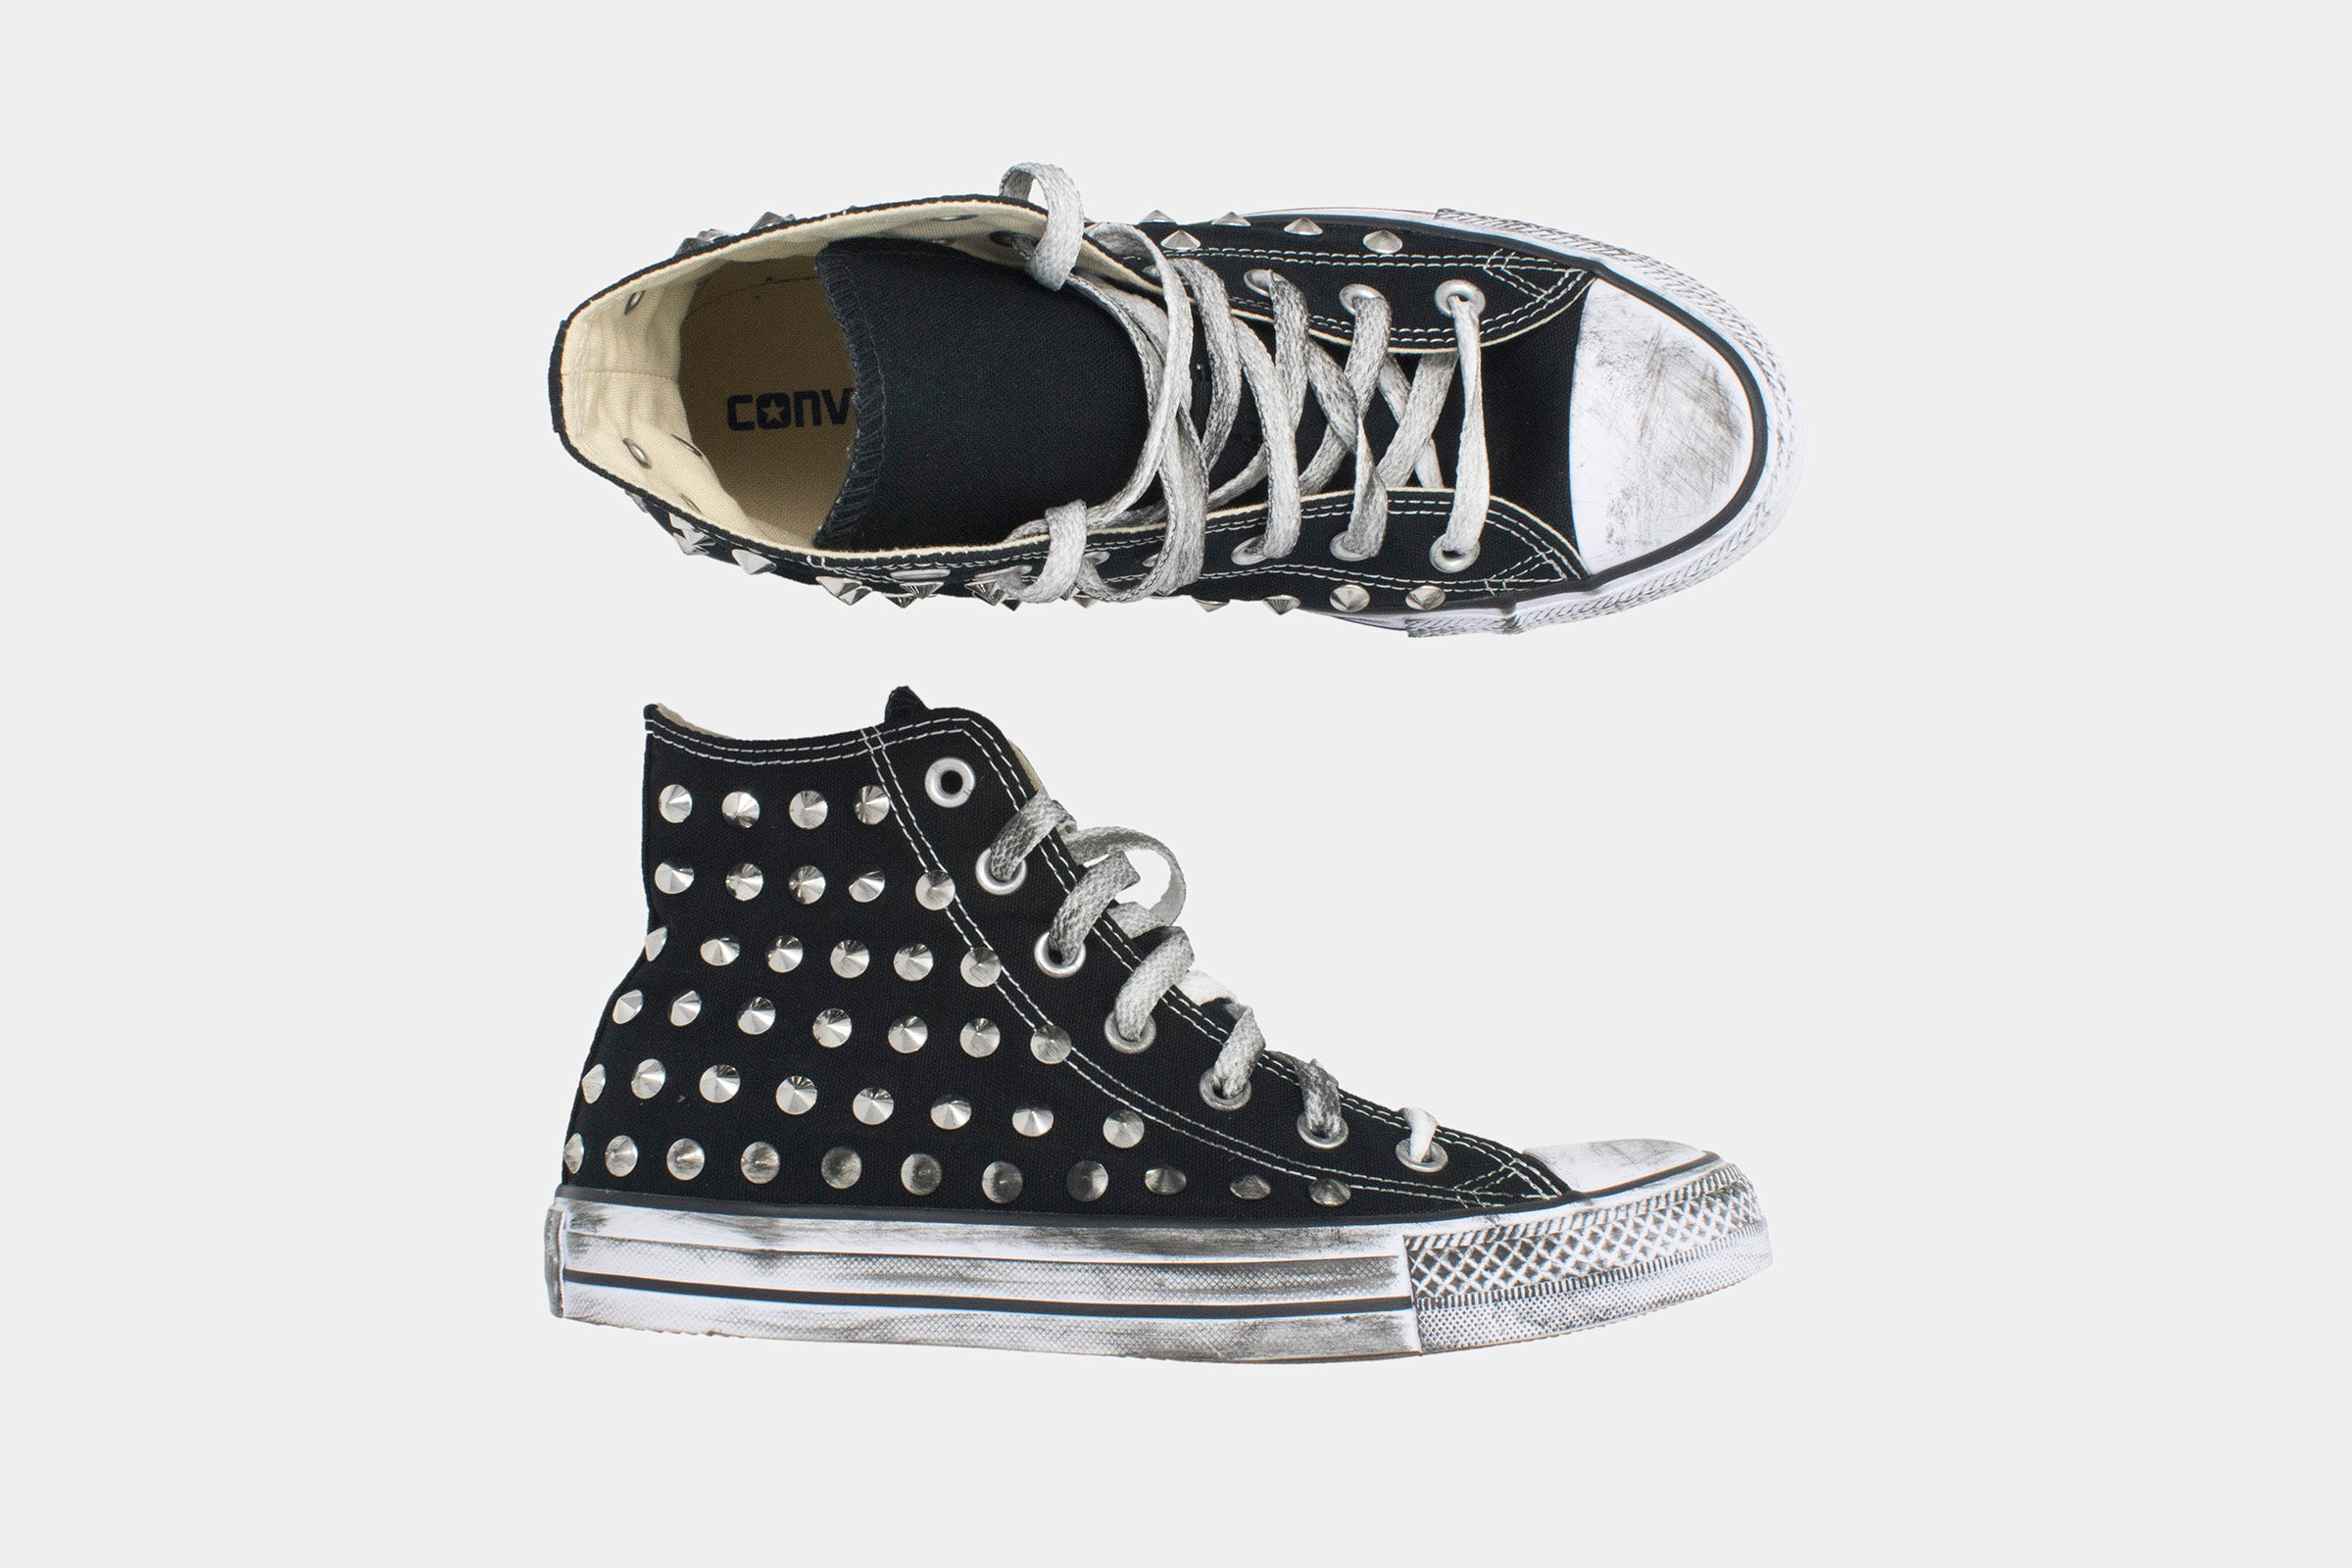 Converse/Chuck Taylor/Black Spike